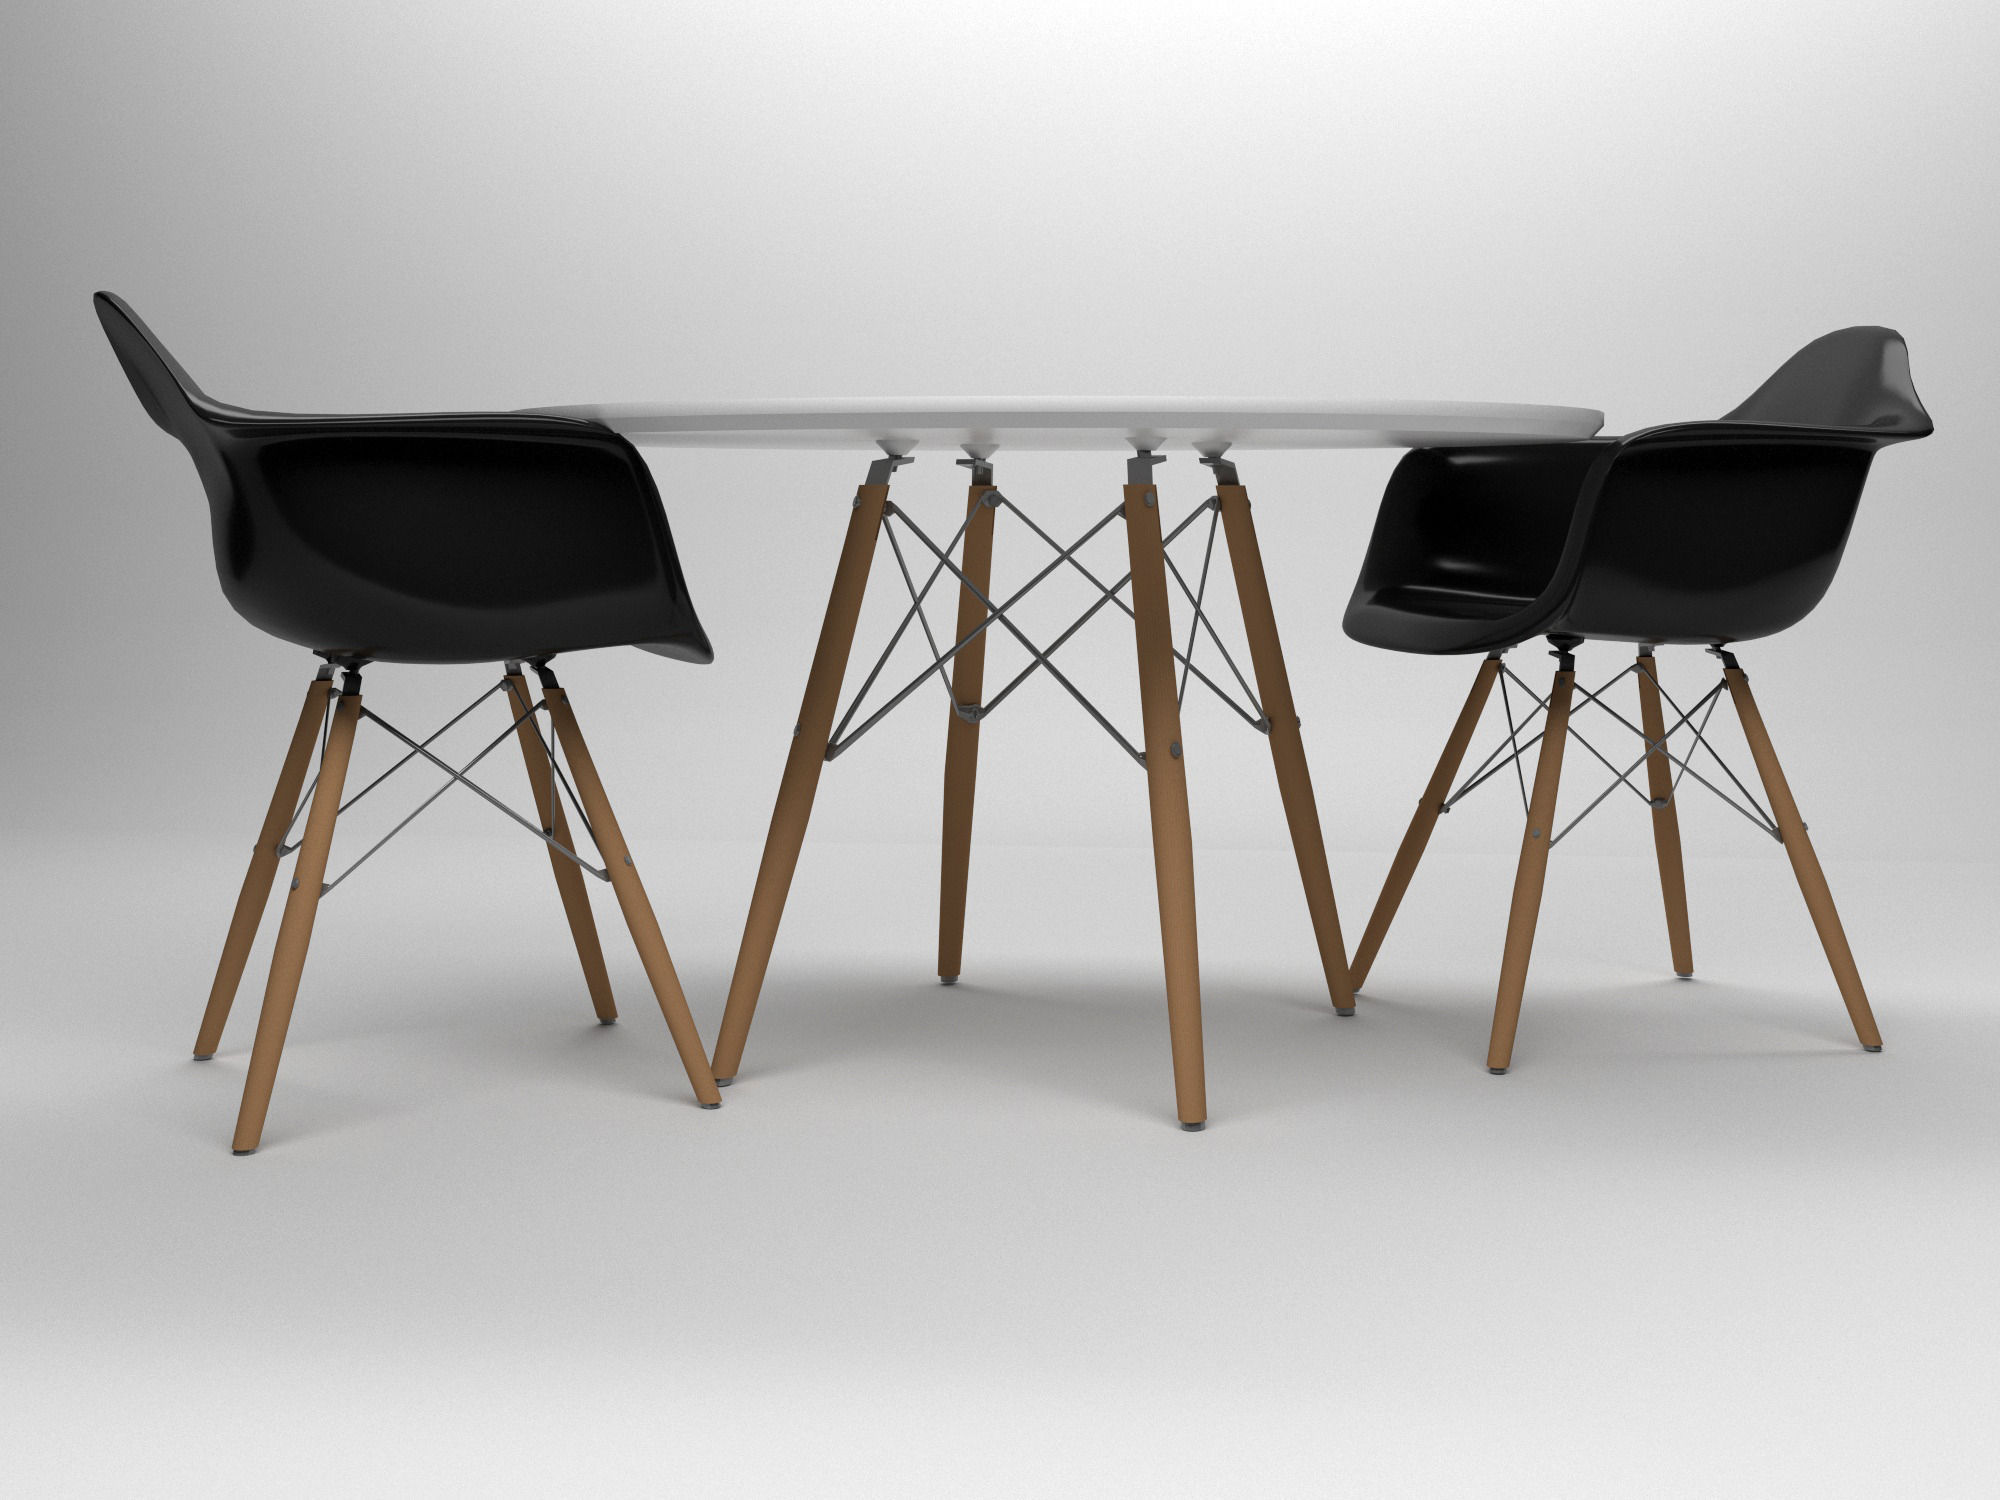 Max A Table Eames Table And Chairs Set 3d Model Max Obj 3ds Fbx